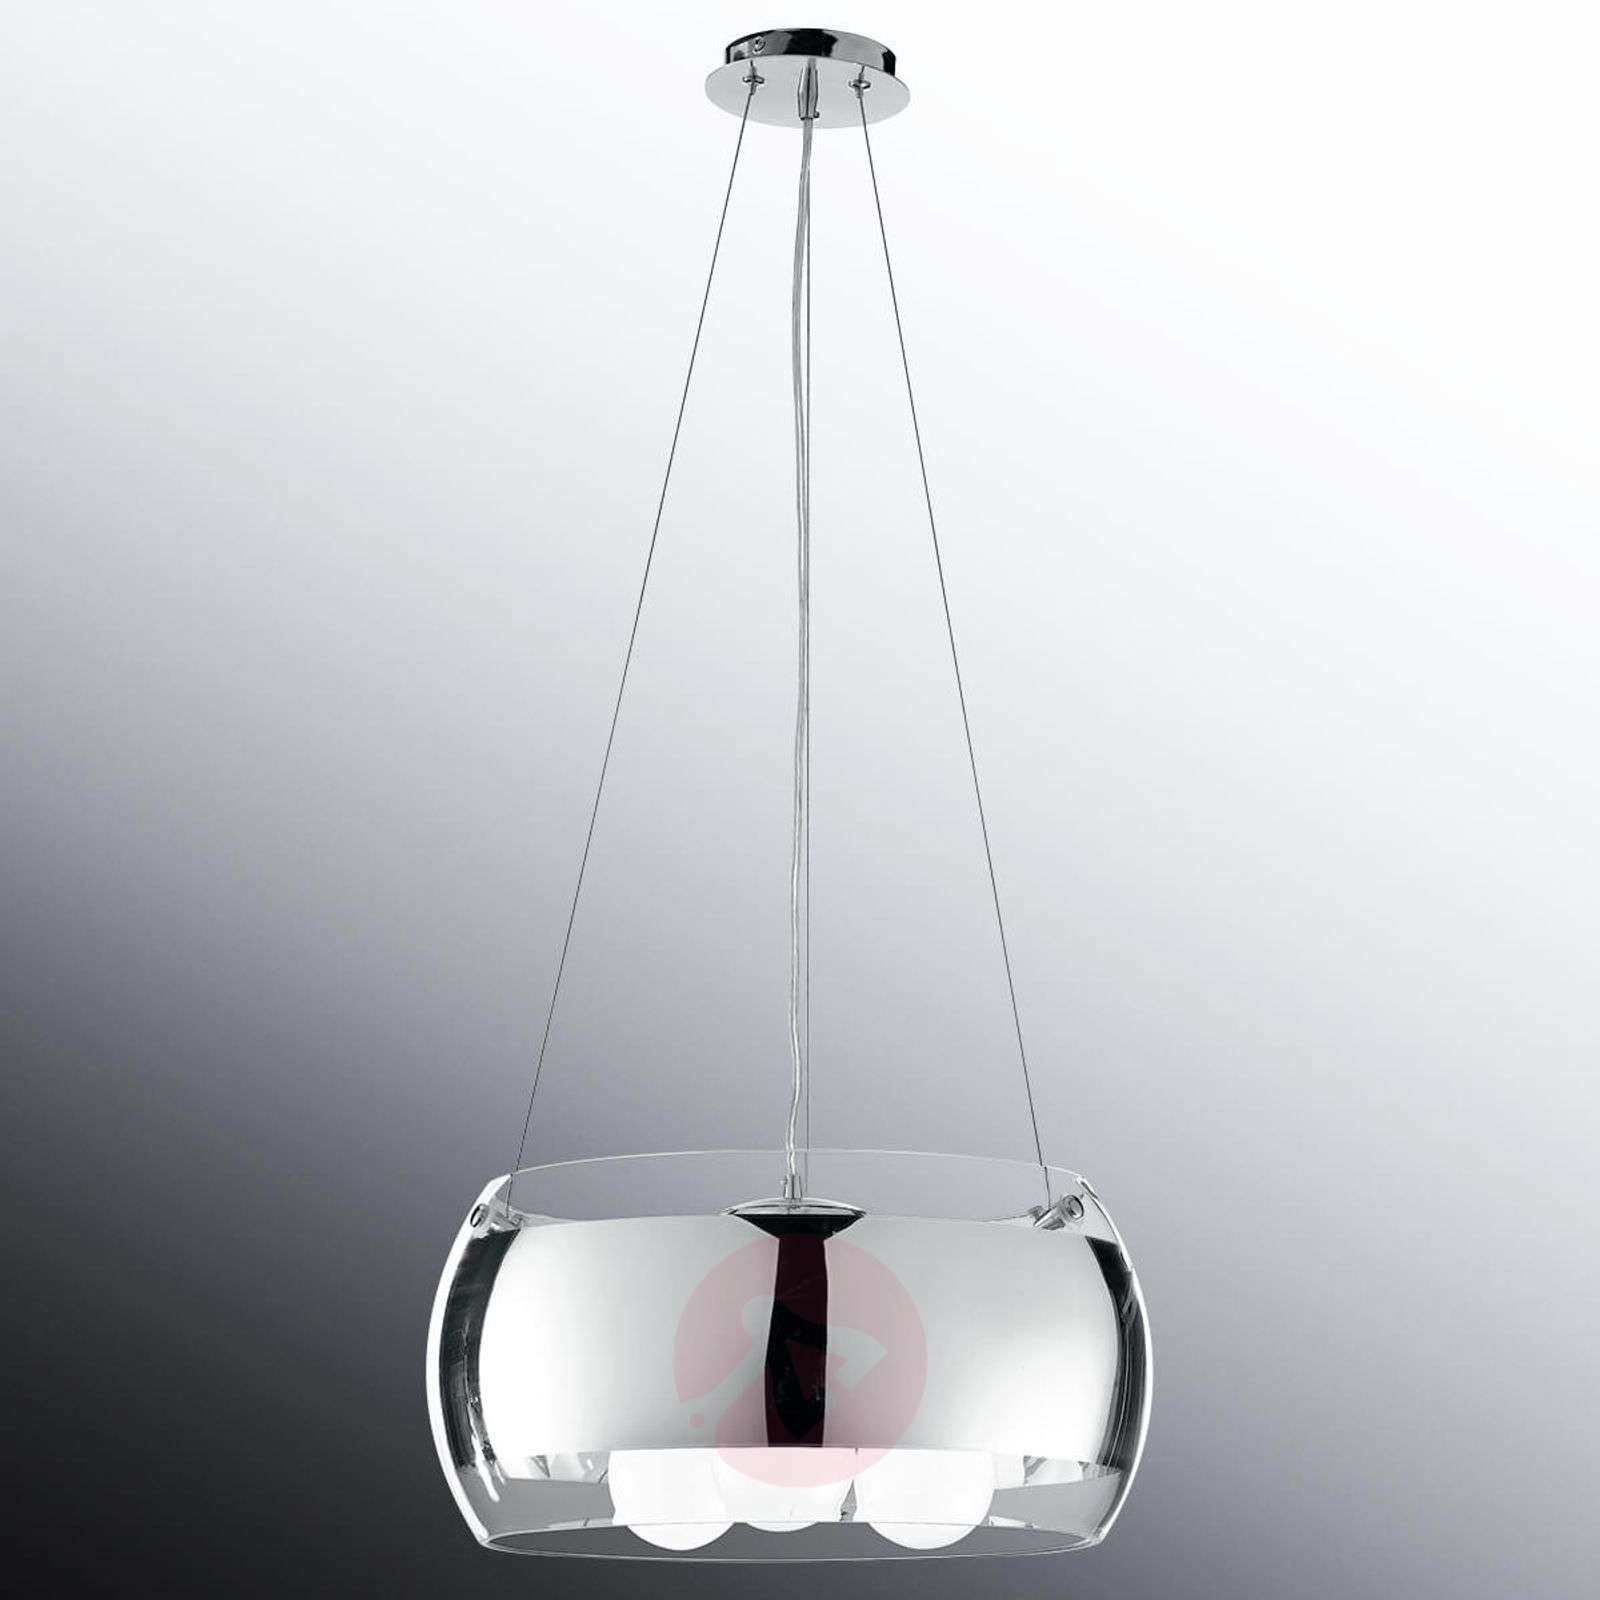 Equatore elegant pendant light, glass lampshade-3006584-010